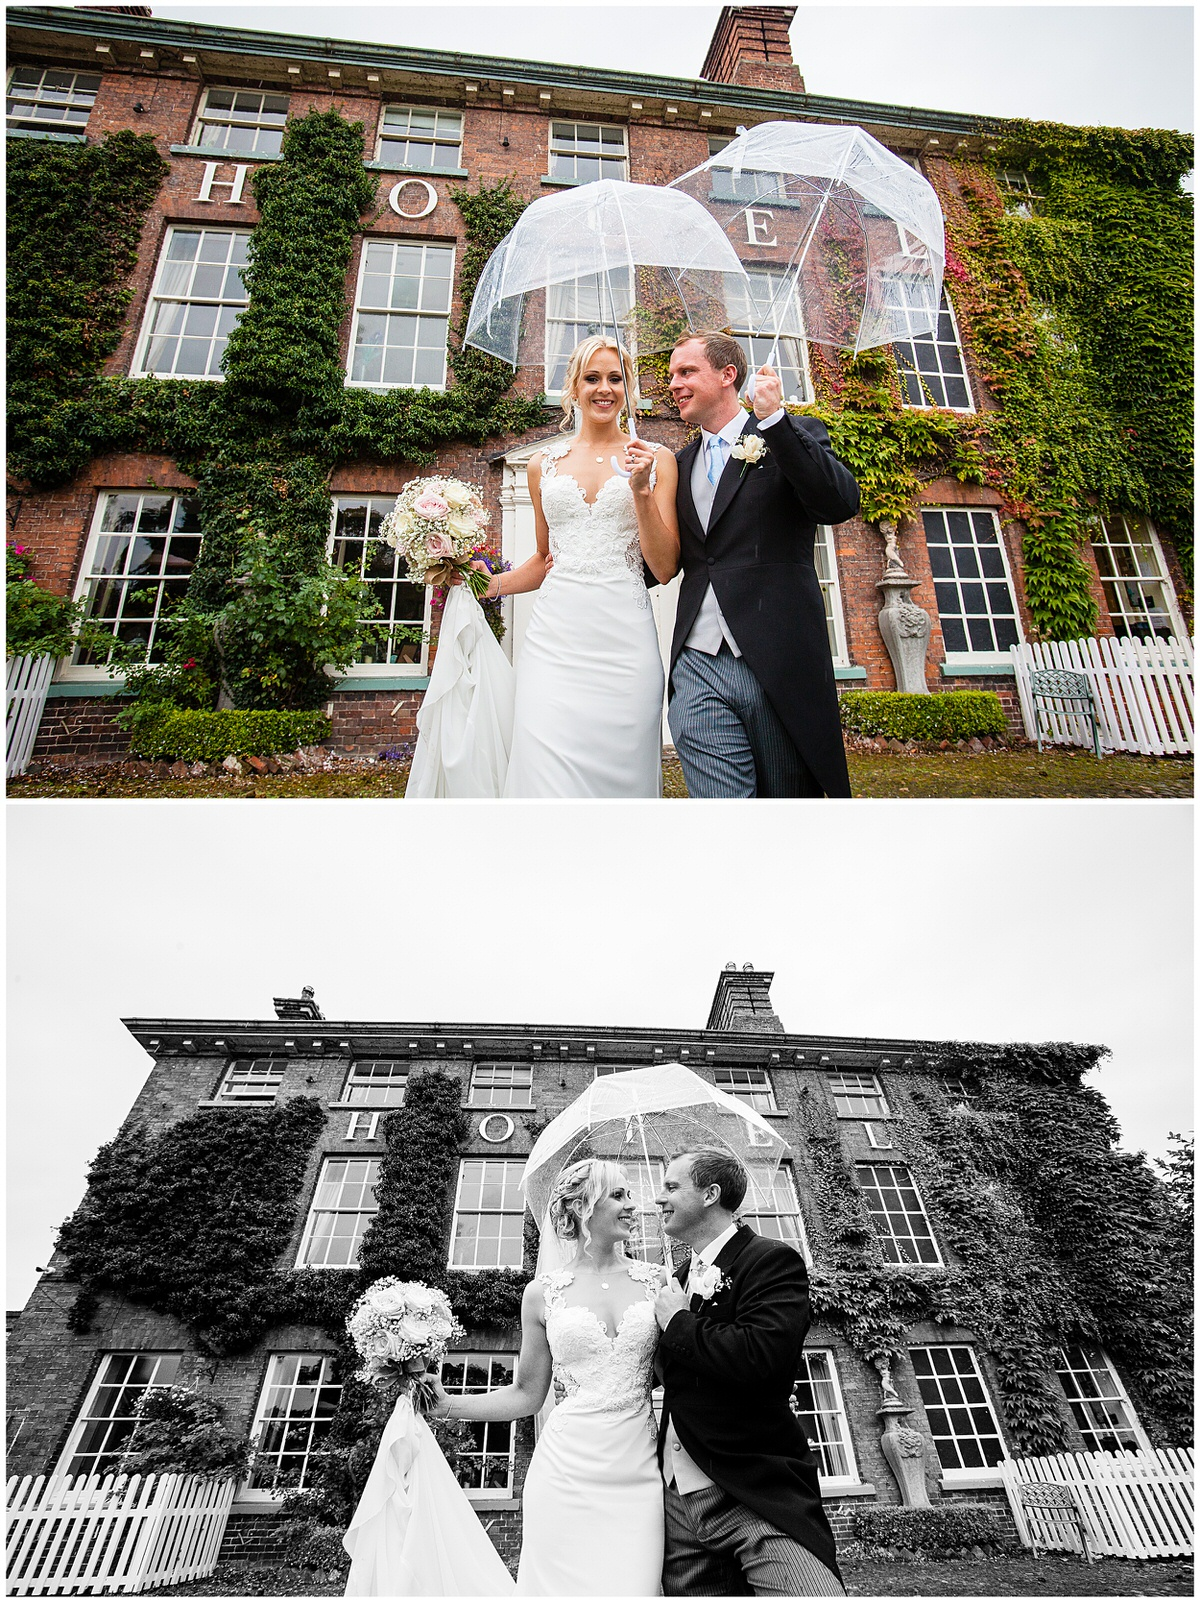 bride and groom looking cozy under the umbrella mytton and mermaid wedding photographer